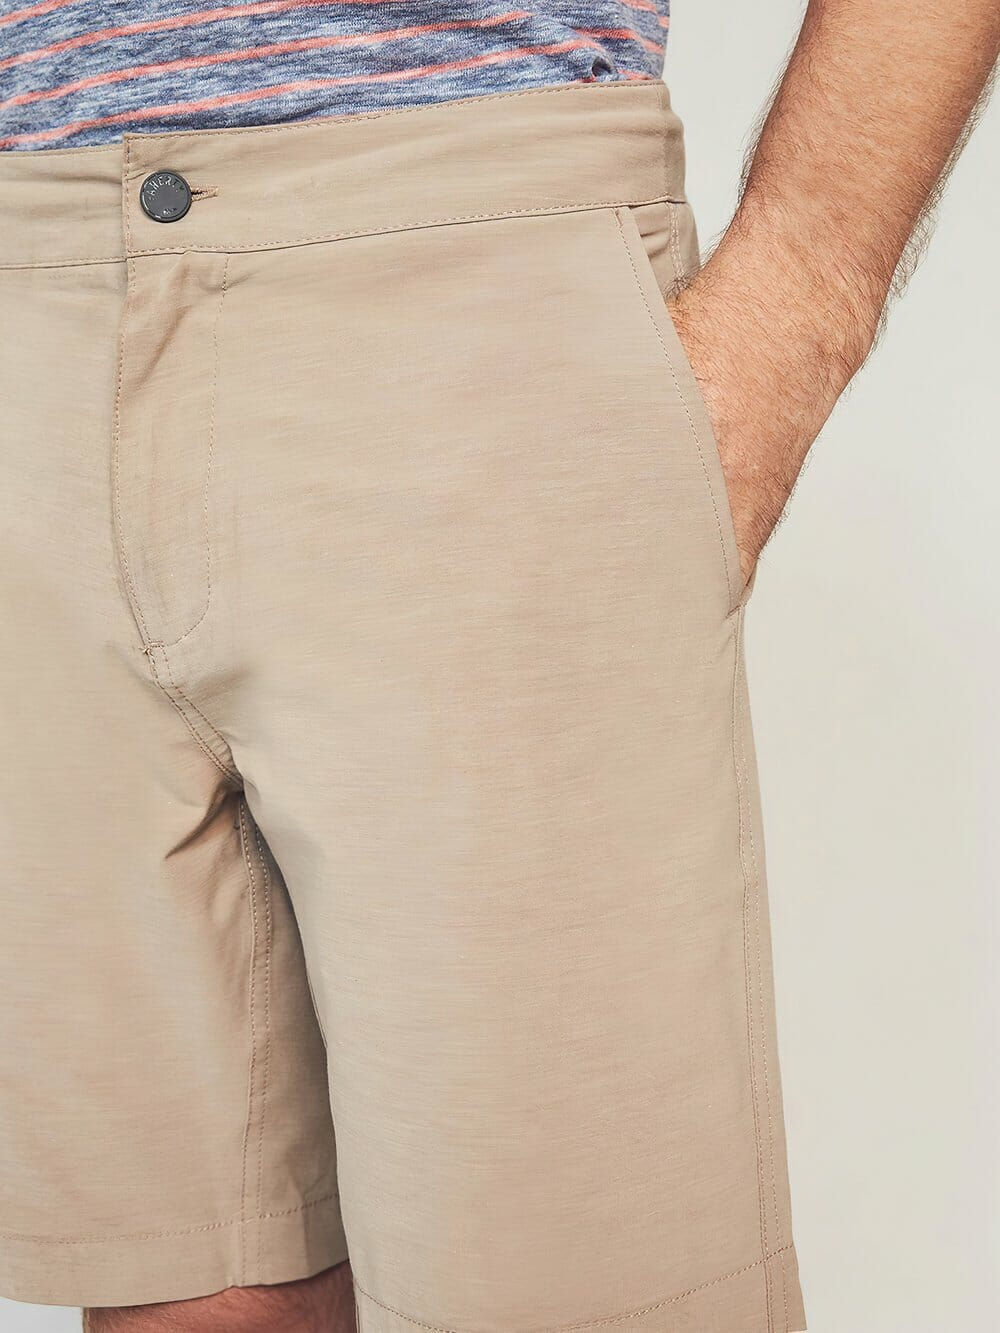 Faherty All Day Shorts Review - The shorts so good you won't want to take them off 3